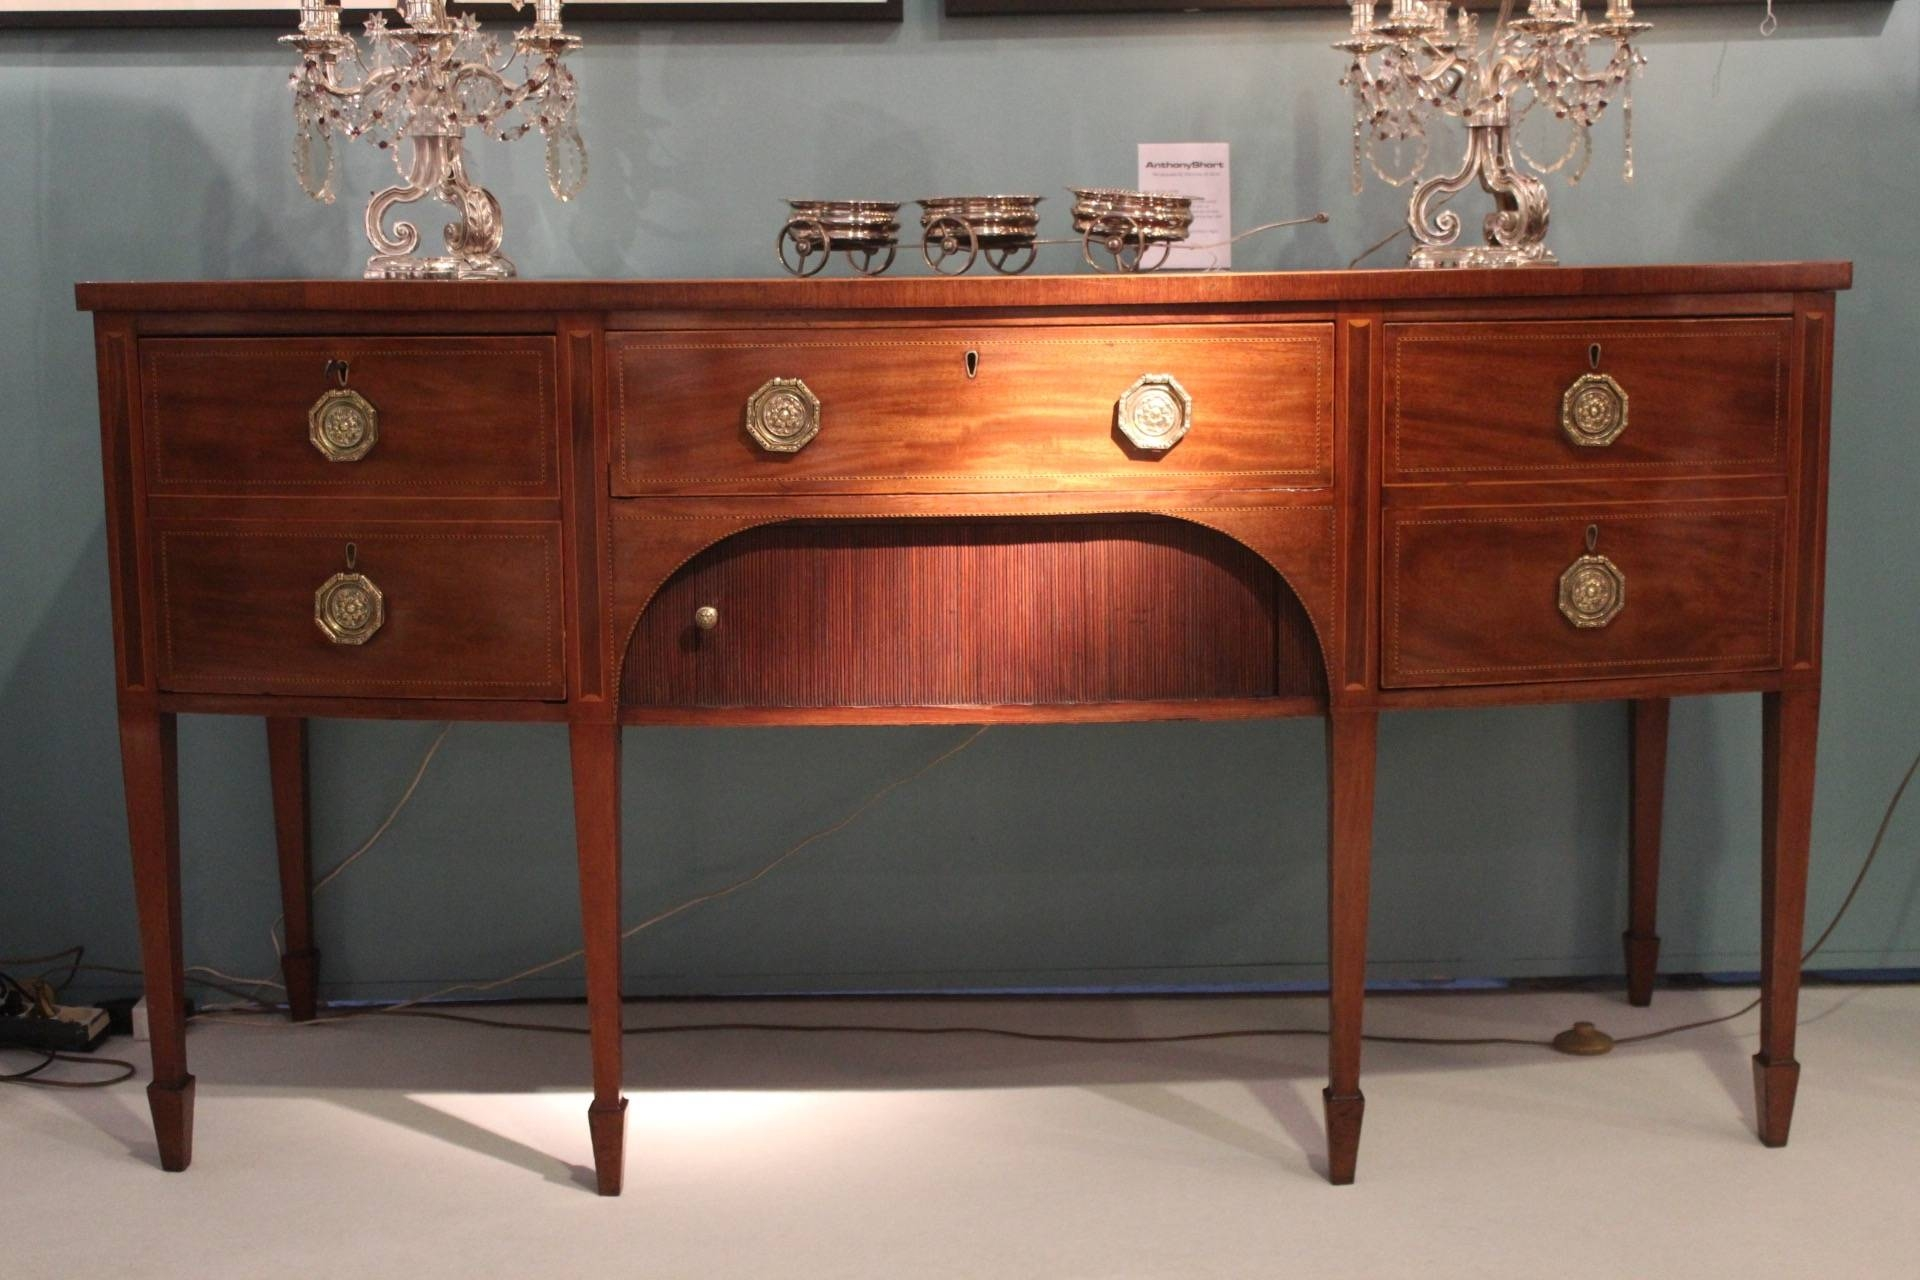 Antique Sideboards – Antique Chiffonier – Mahogany Sideboards Throughout Antique Sideboards (View 8 of 15)